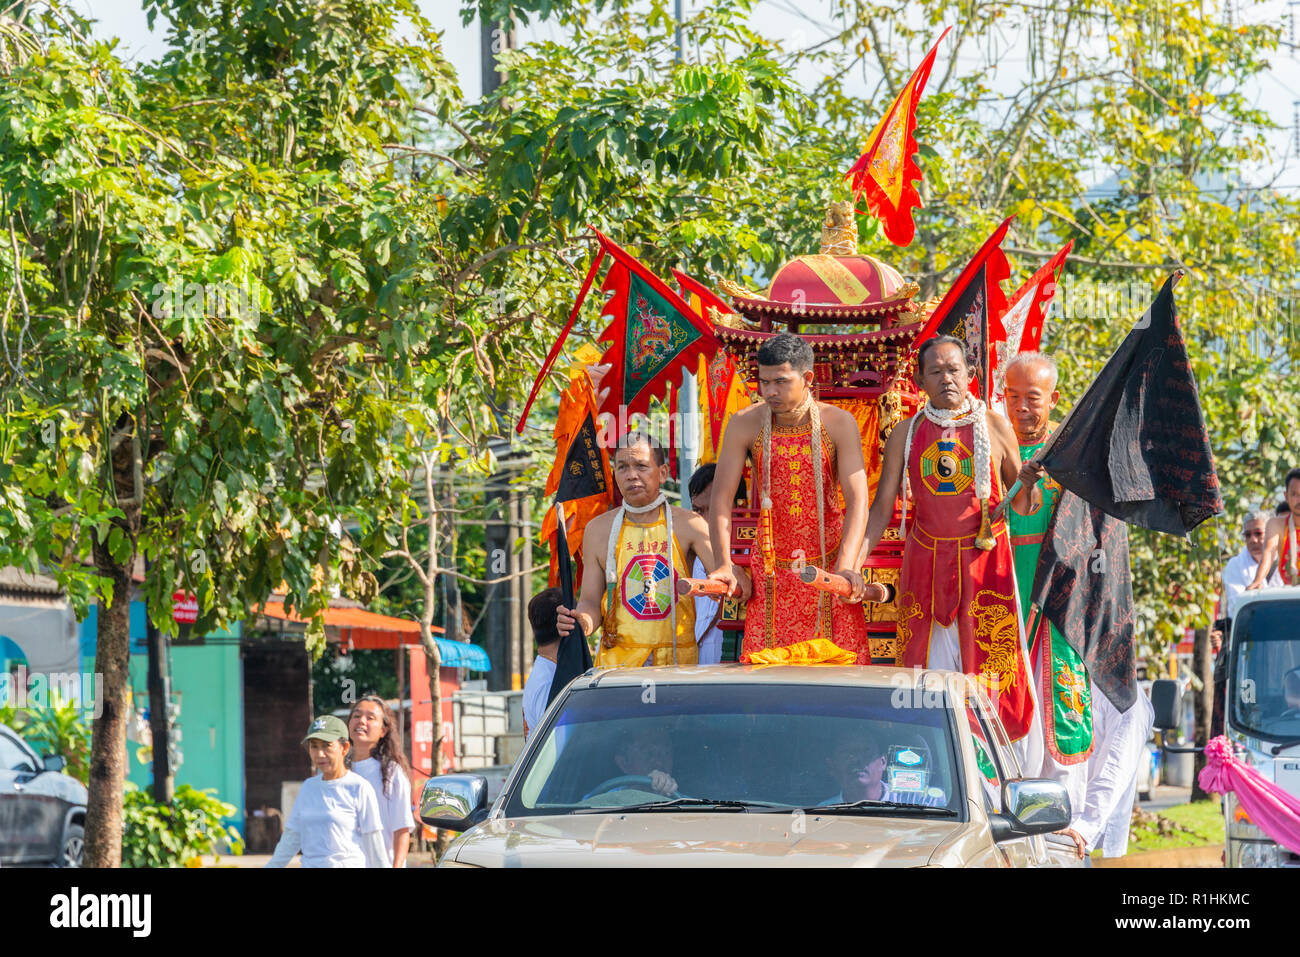 Phang Nga, Thailand - October 15, 2018: People in Chinese costume on back of pickup car act as assumed Chinese god marching on street in vegetarian fe - Stock Image